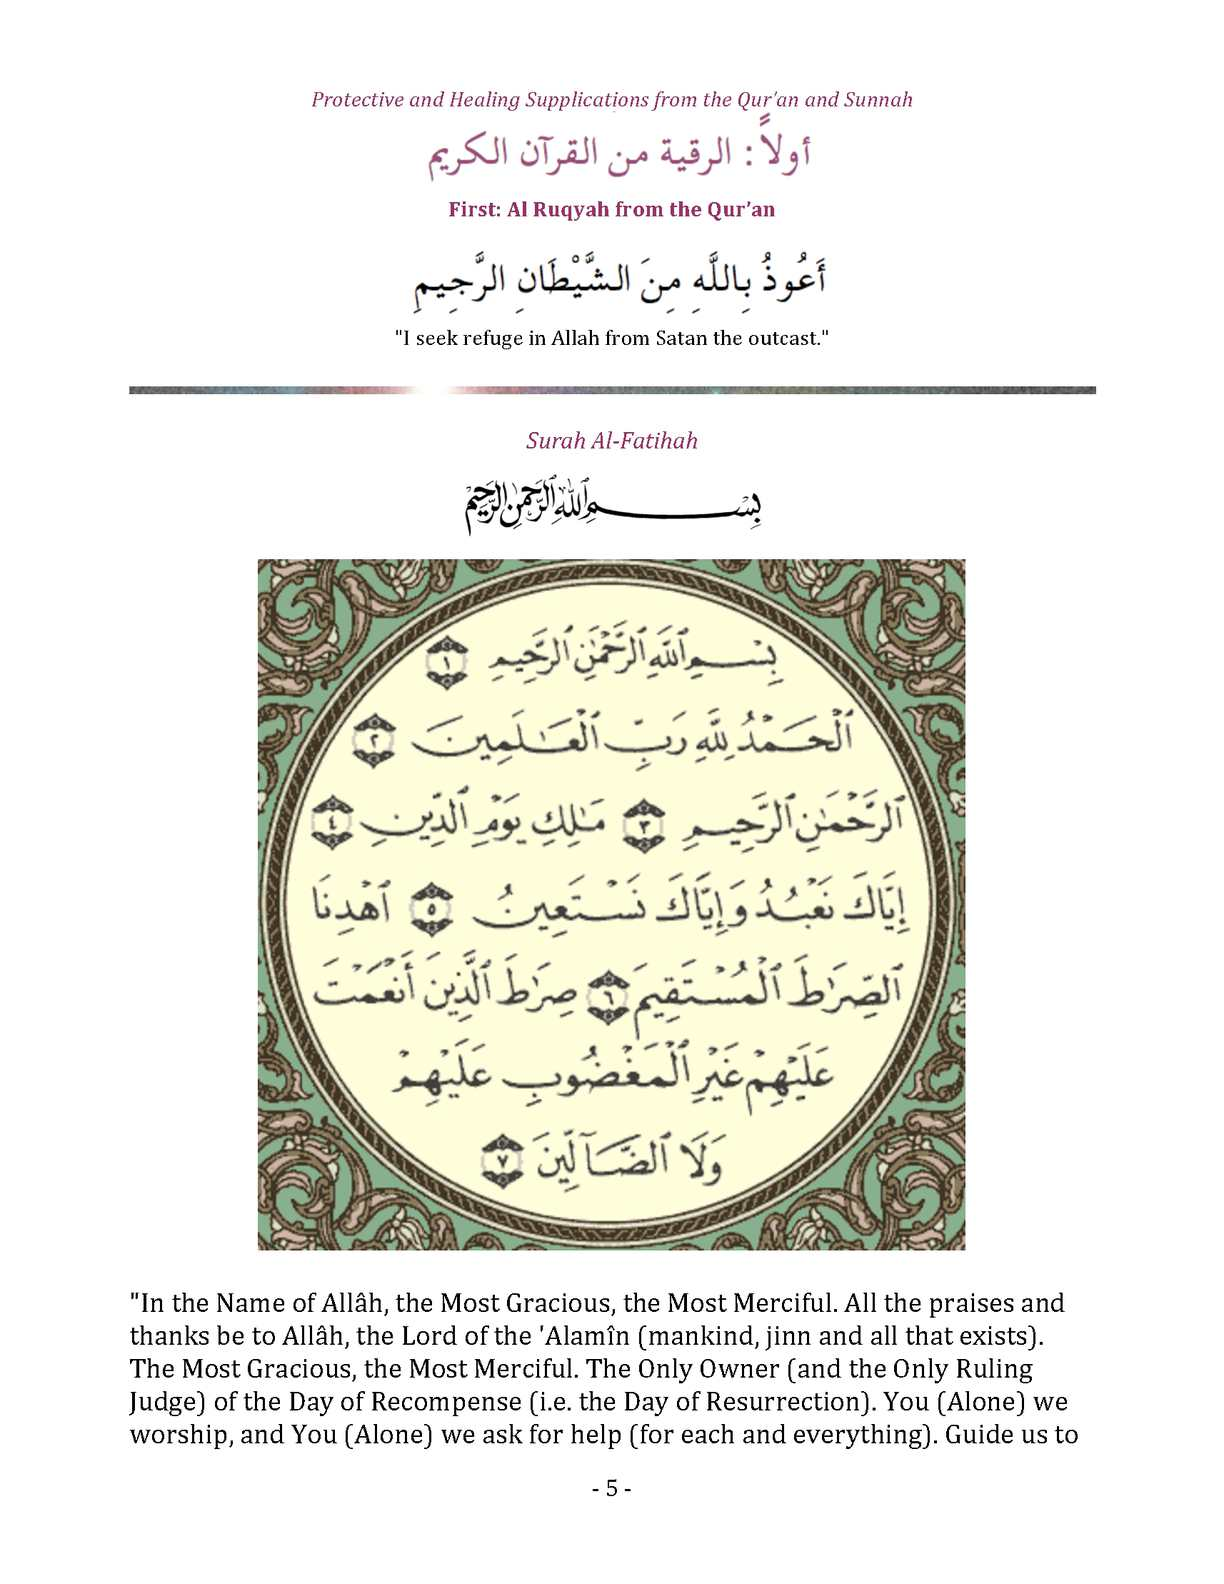 Al Ruqyah - Protective and Healing Supplications from the